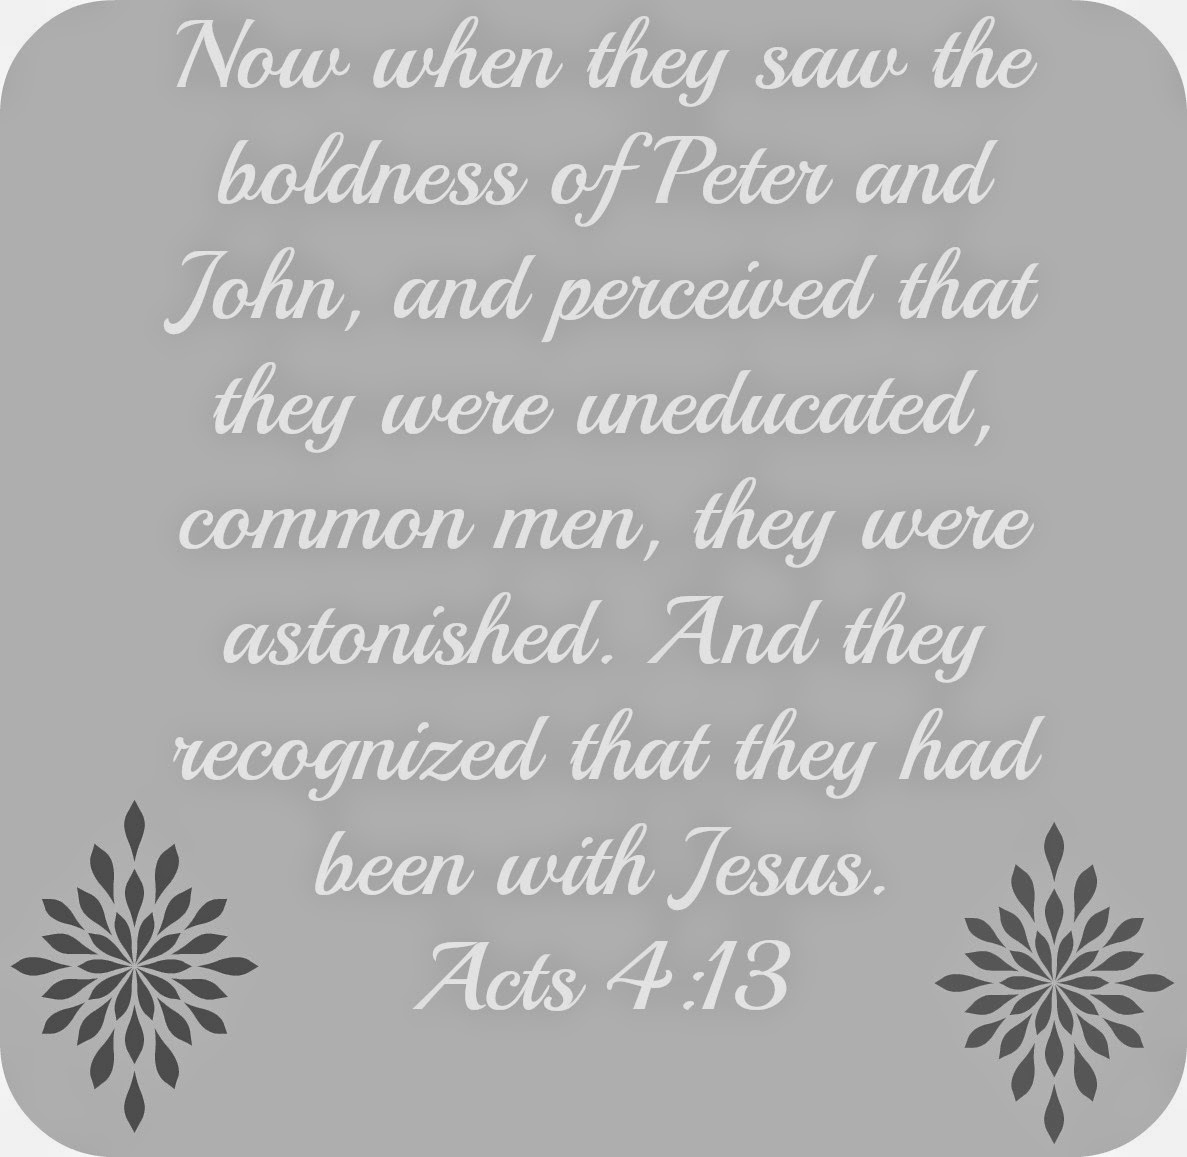 acts 4_13